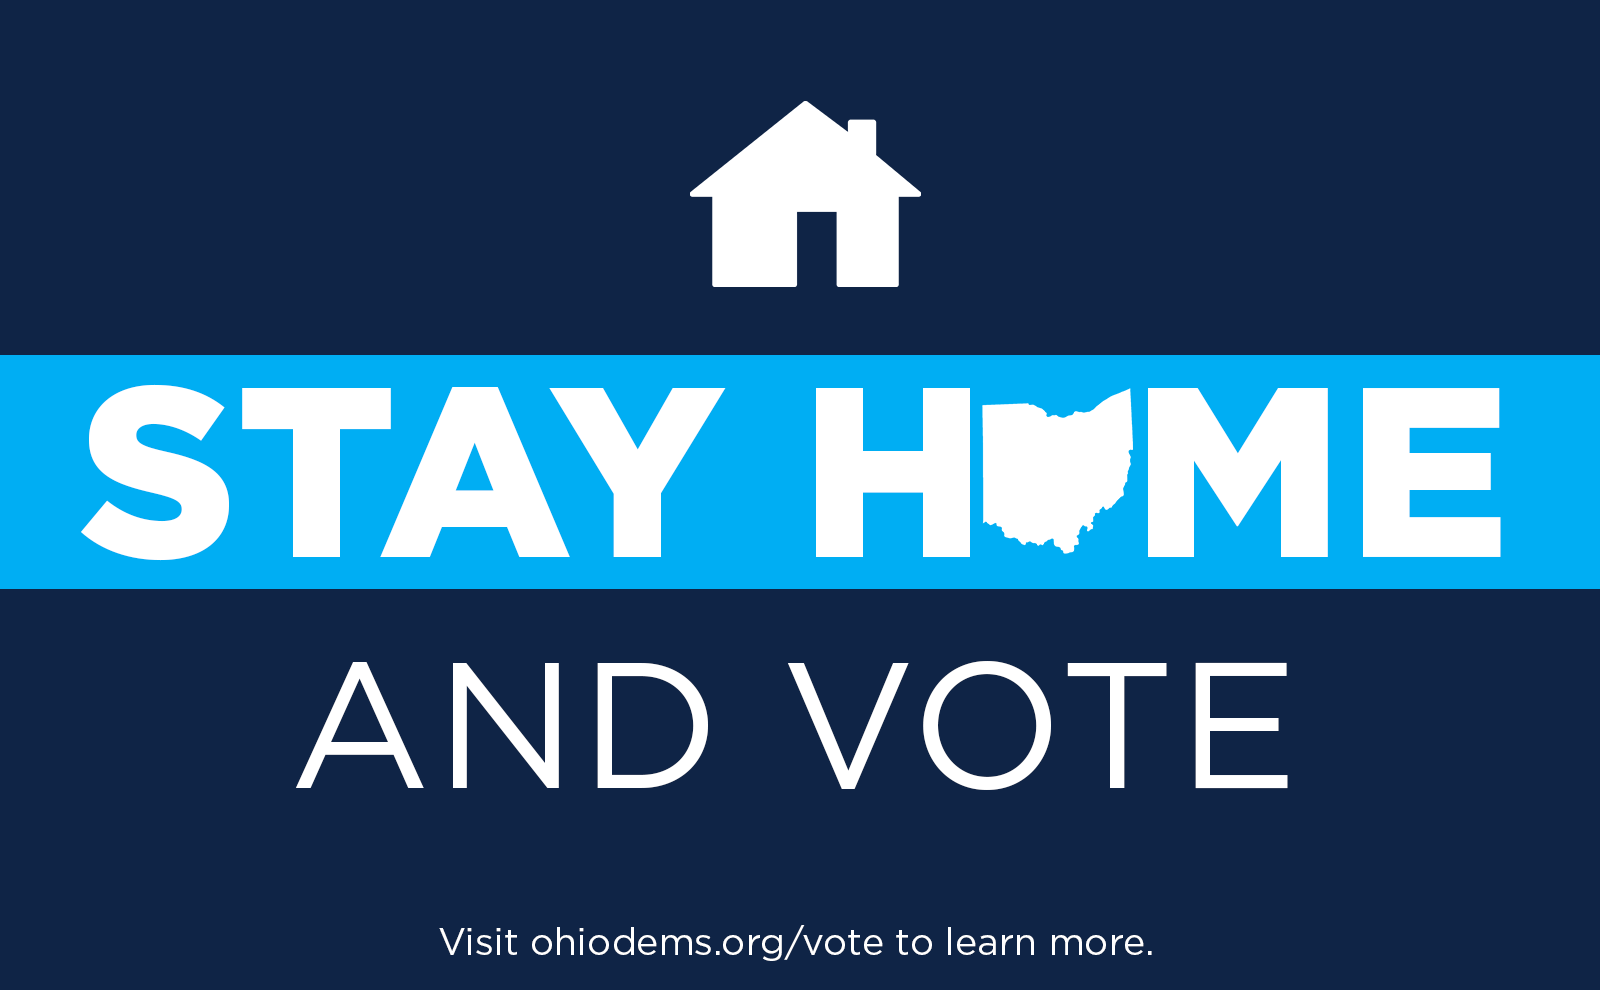 Stay Home and Vote